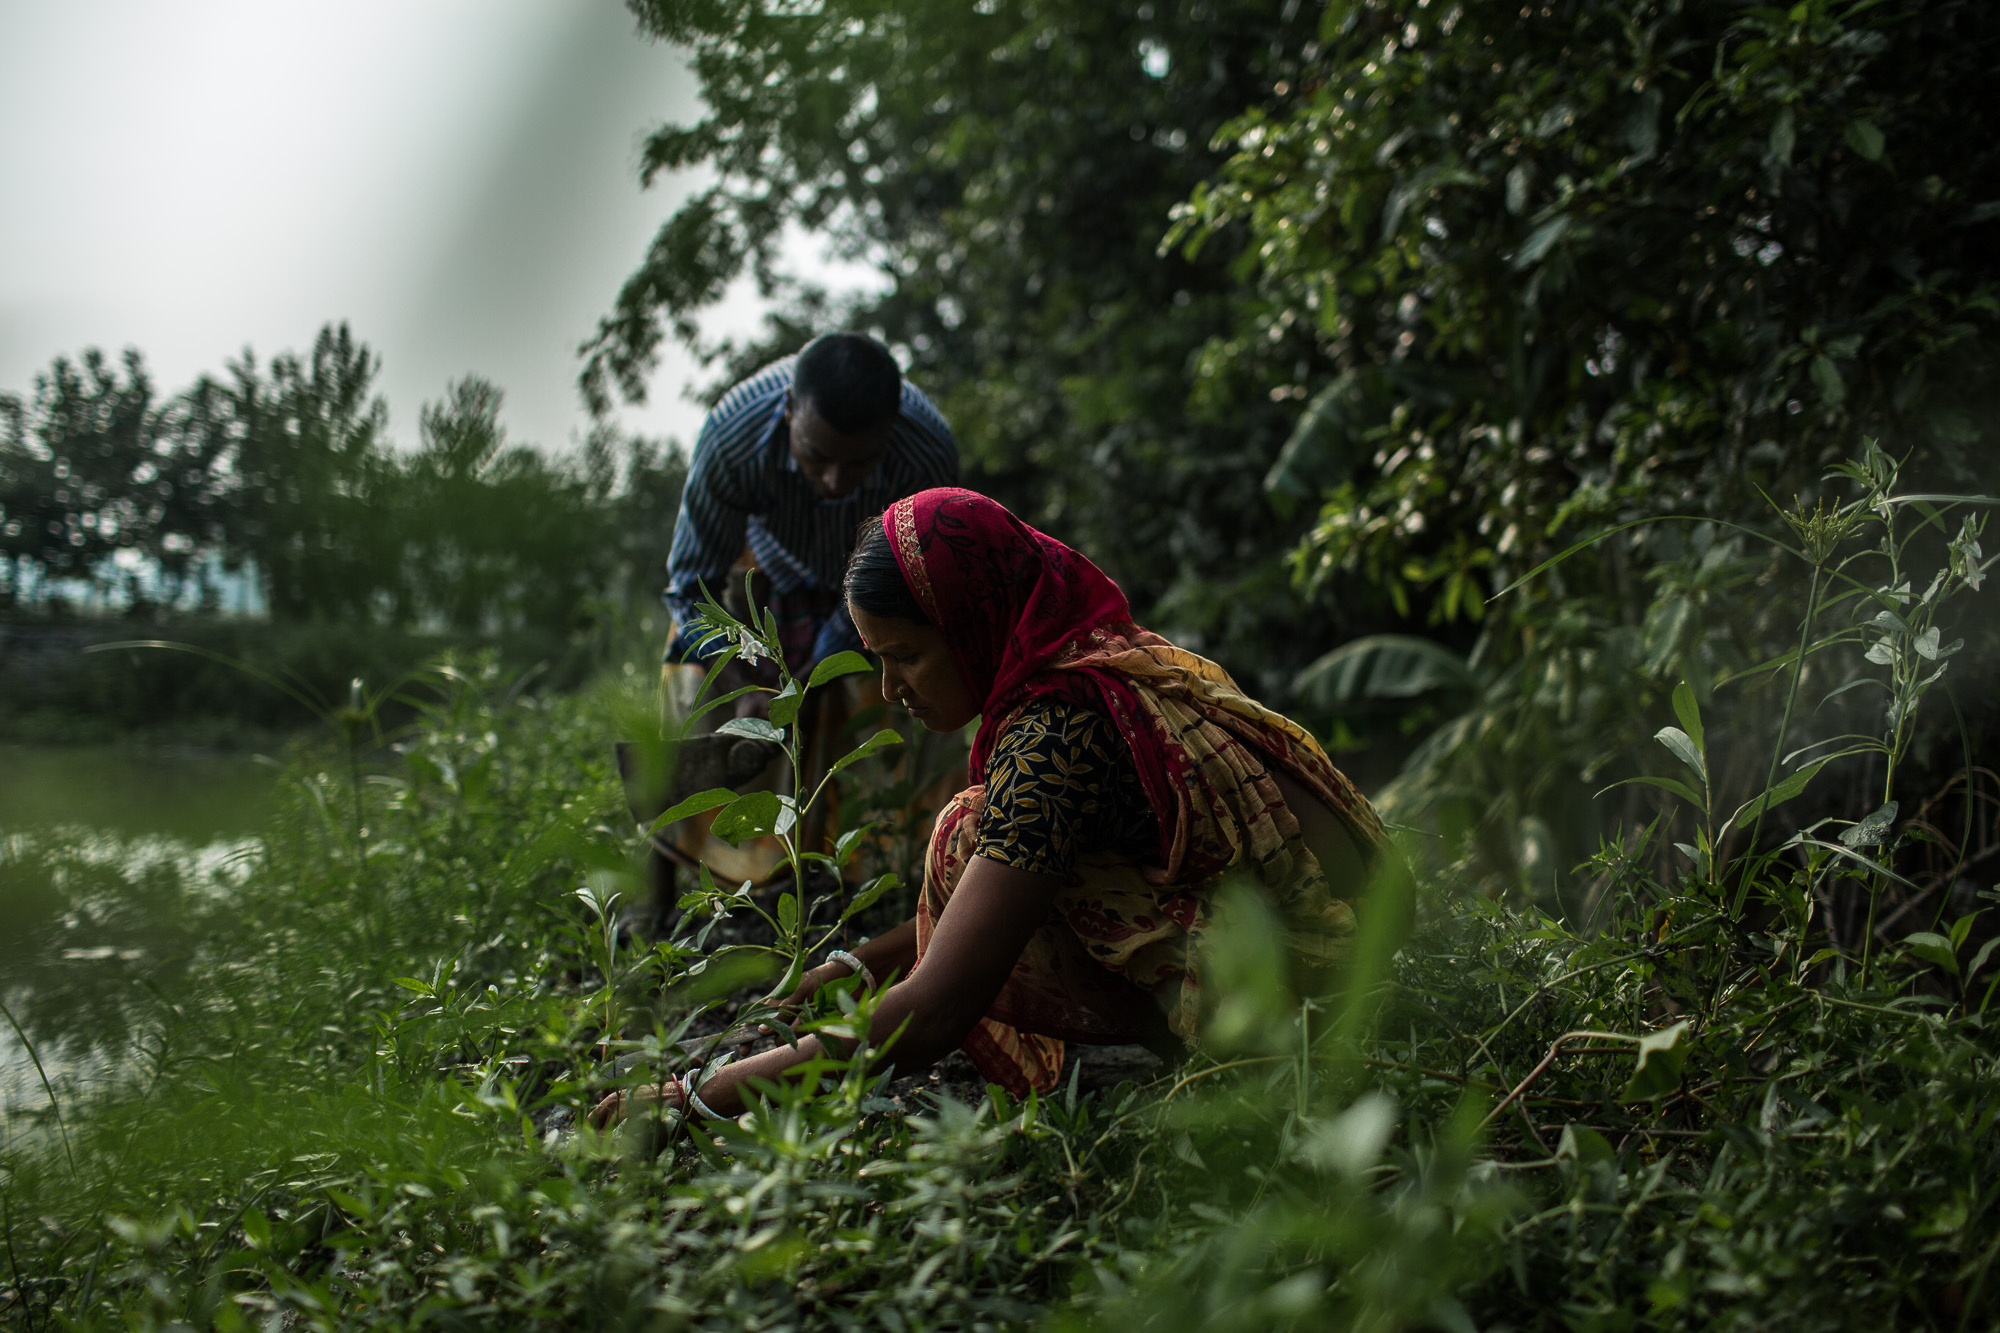 Through training funded by USAID, Taroni and his wife learned how to plant seedlings in a row.